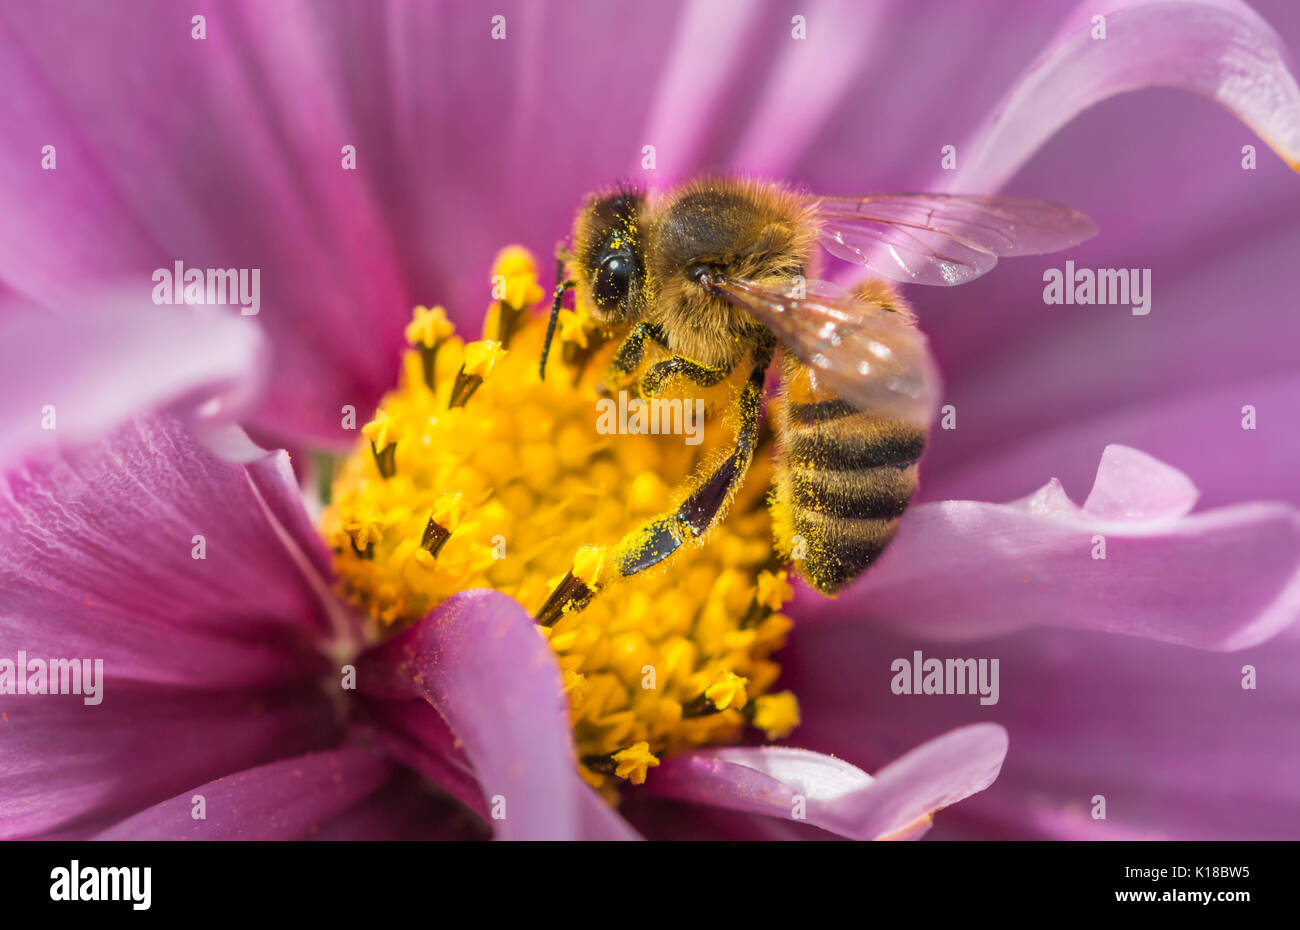 European Honey Bee macro (Apis mellifera) on a Cosmos bipinnatus (Mexican aster) flower collected nectar / pollinating, in West Sussex, England, UK. - Stock Image